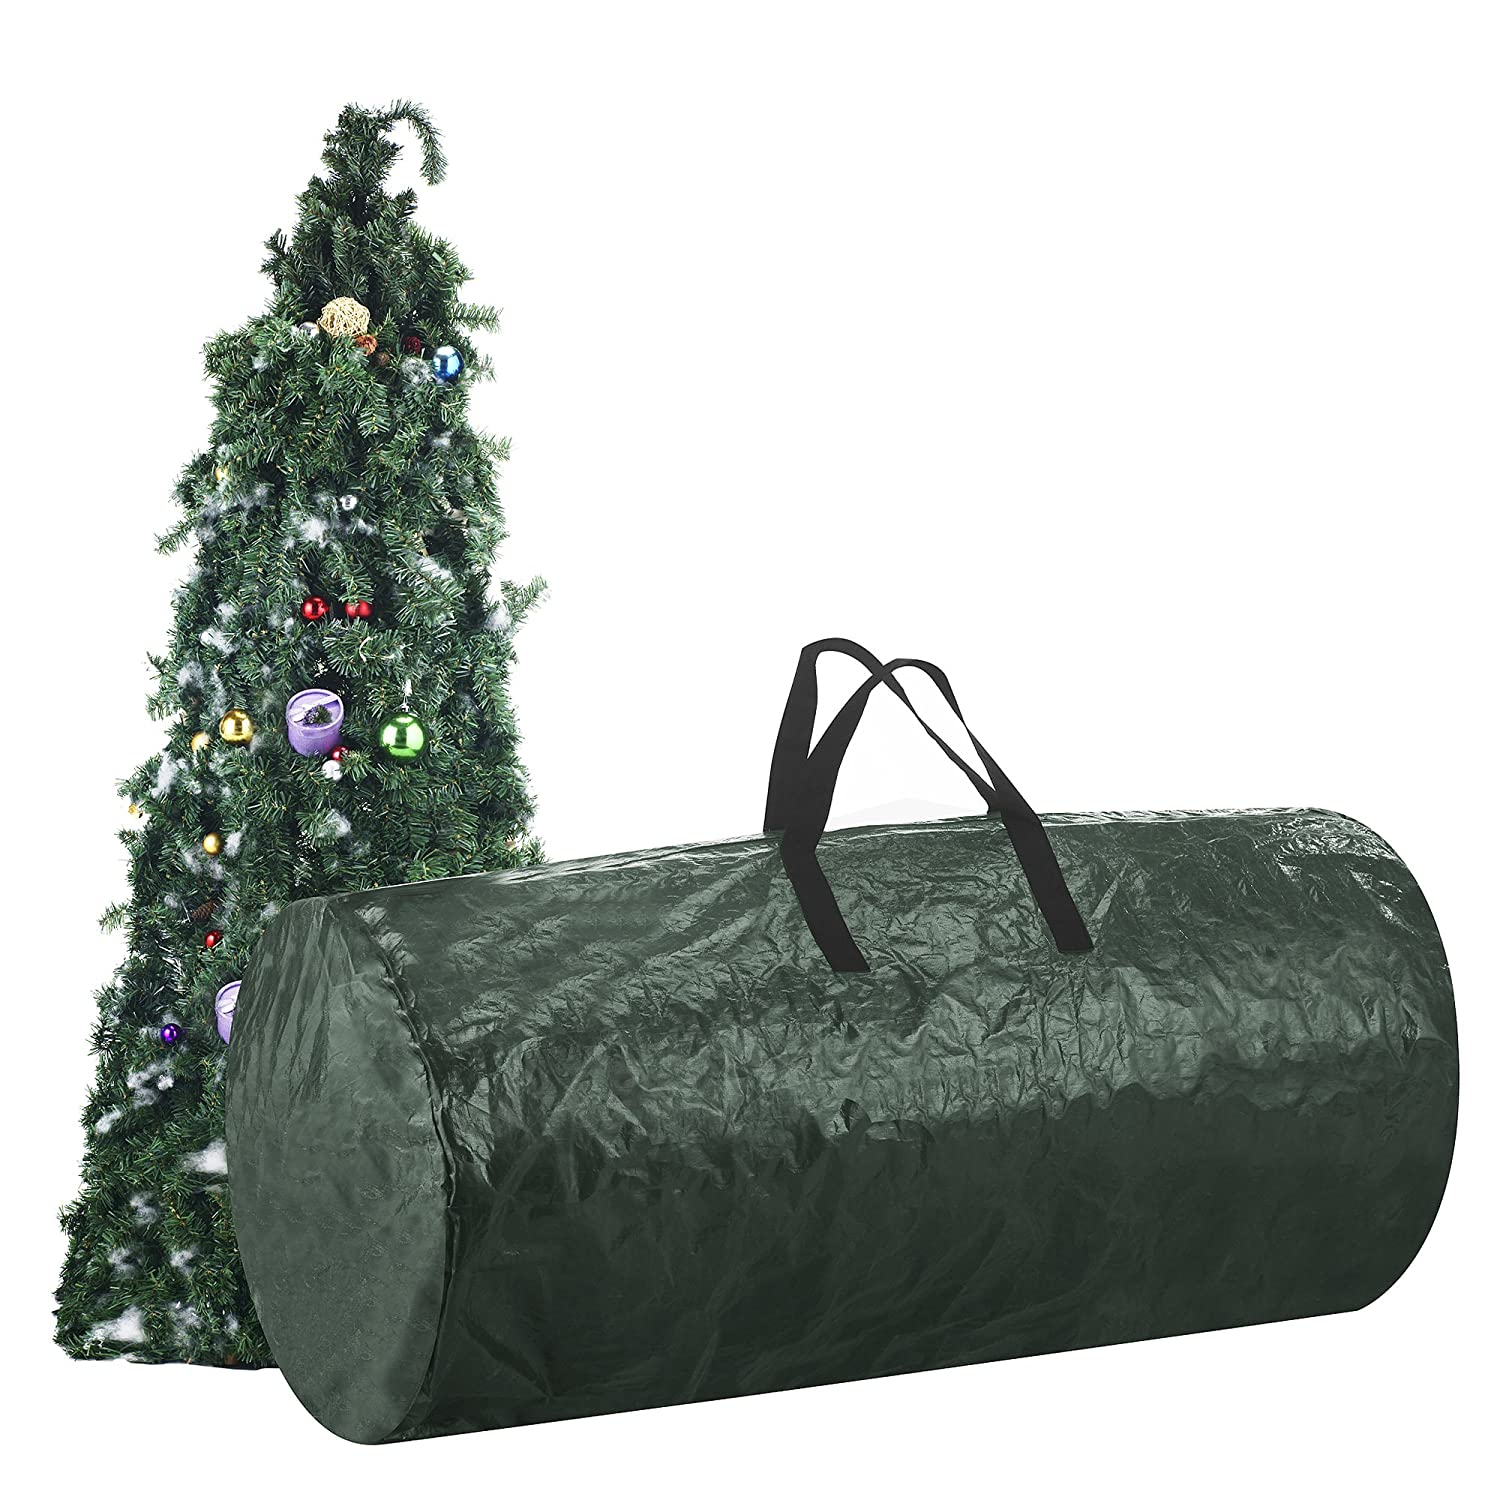 amazoncom elf stor 30 inch by 60 inch christmas tree storage bag green home kitchen - Christmas Tree Bag Storage